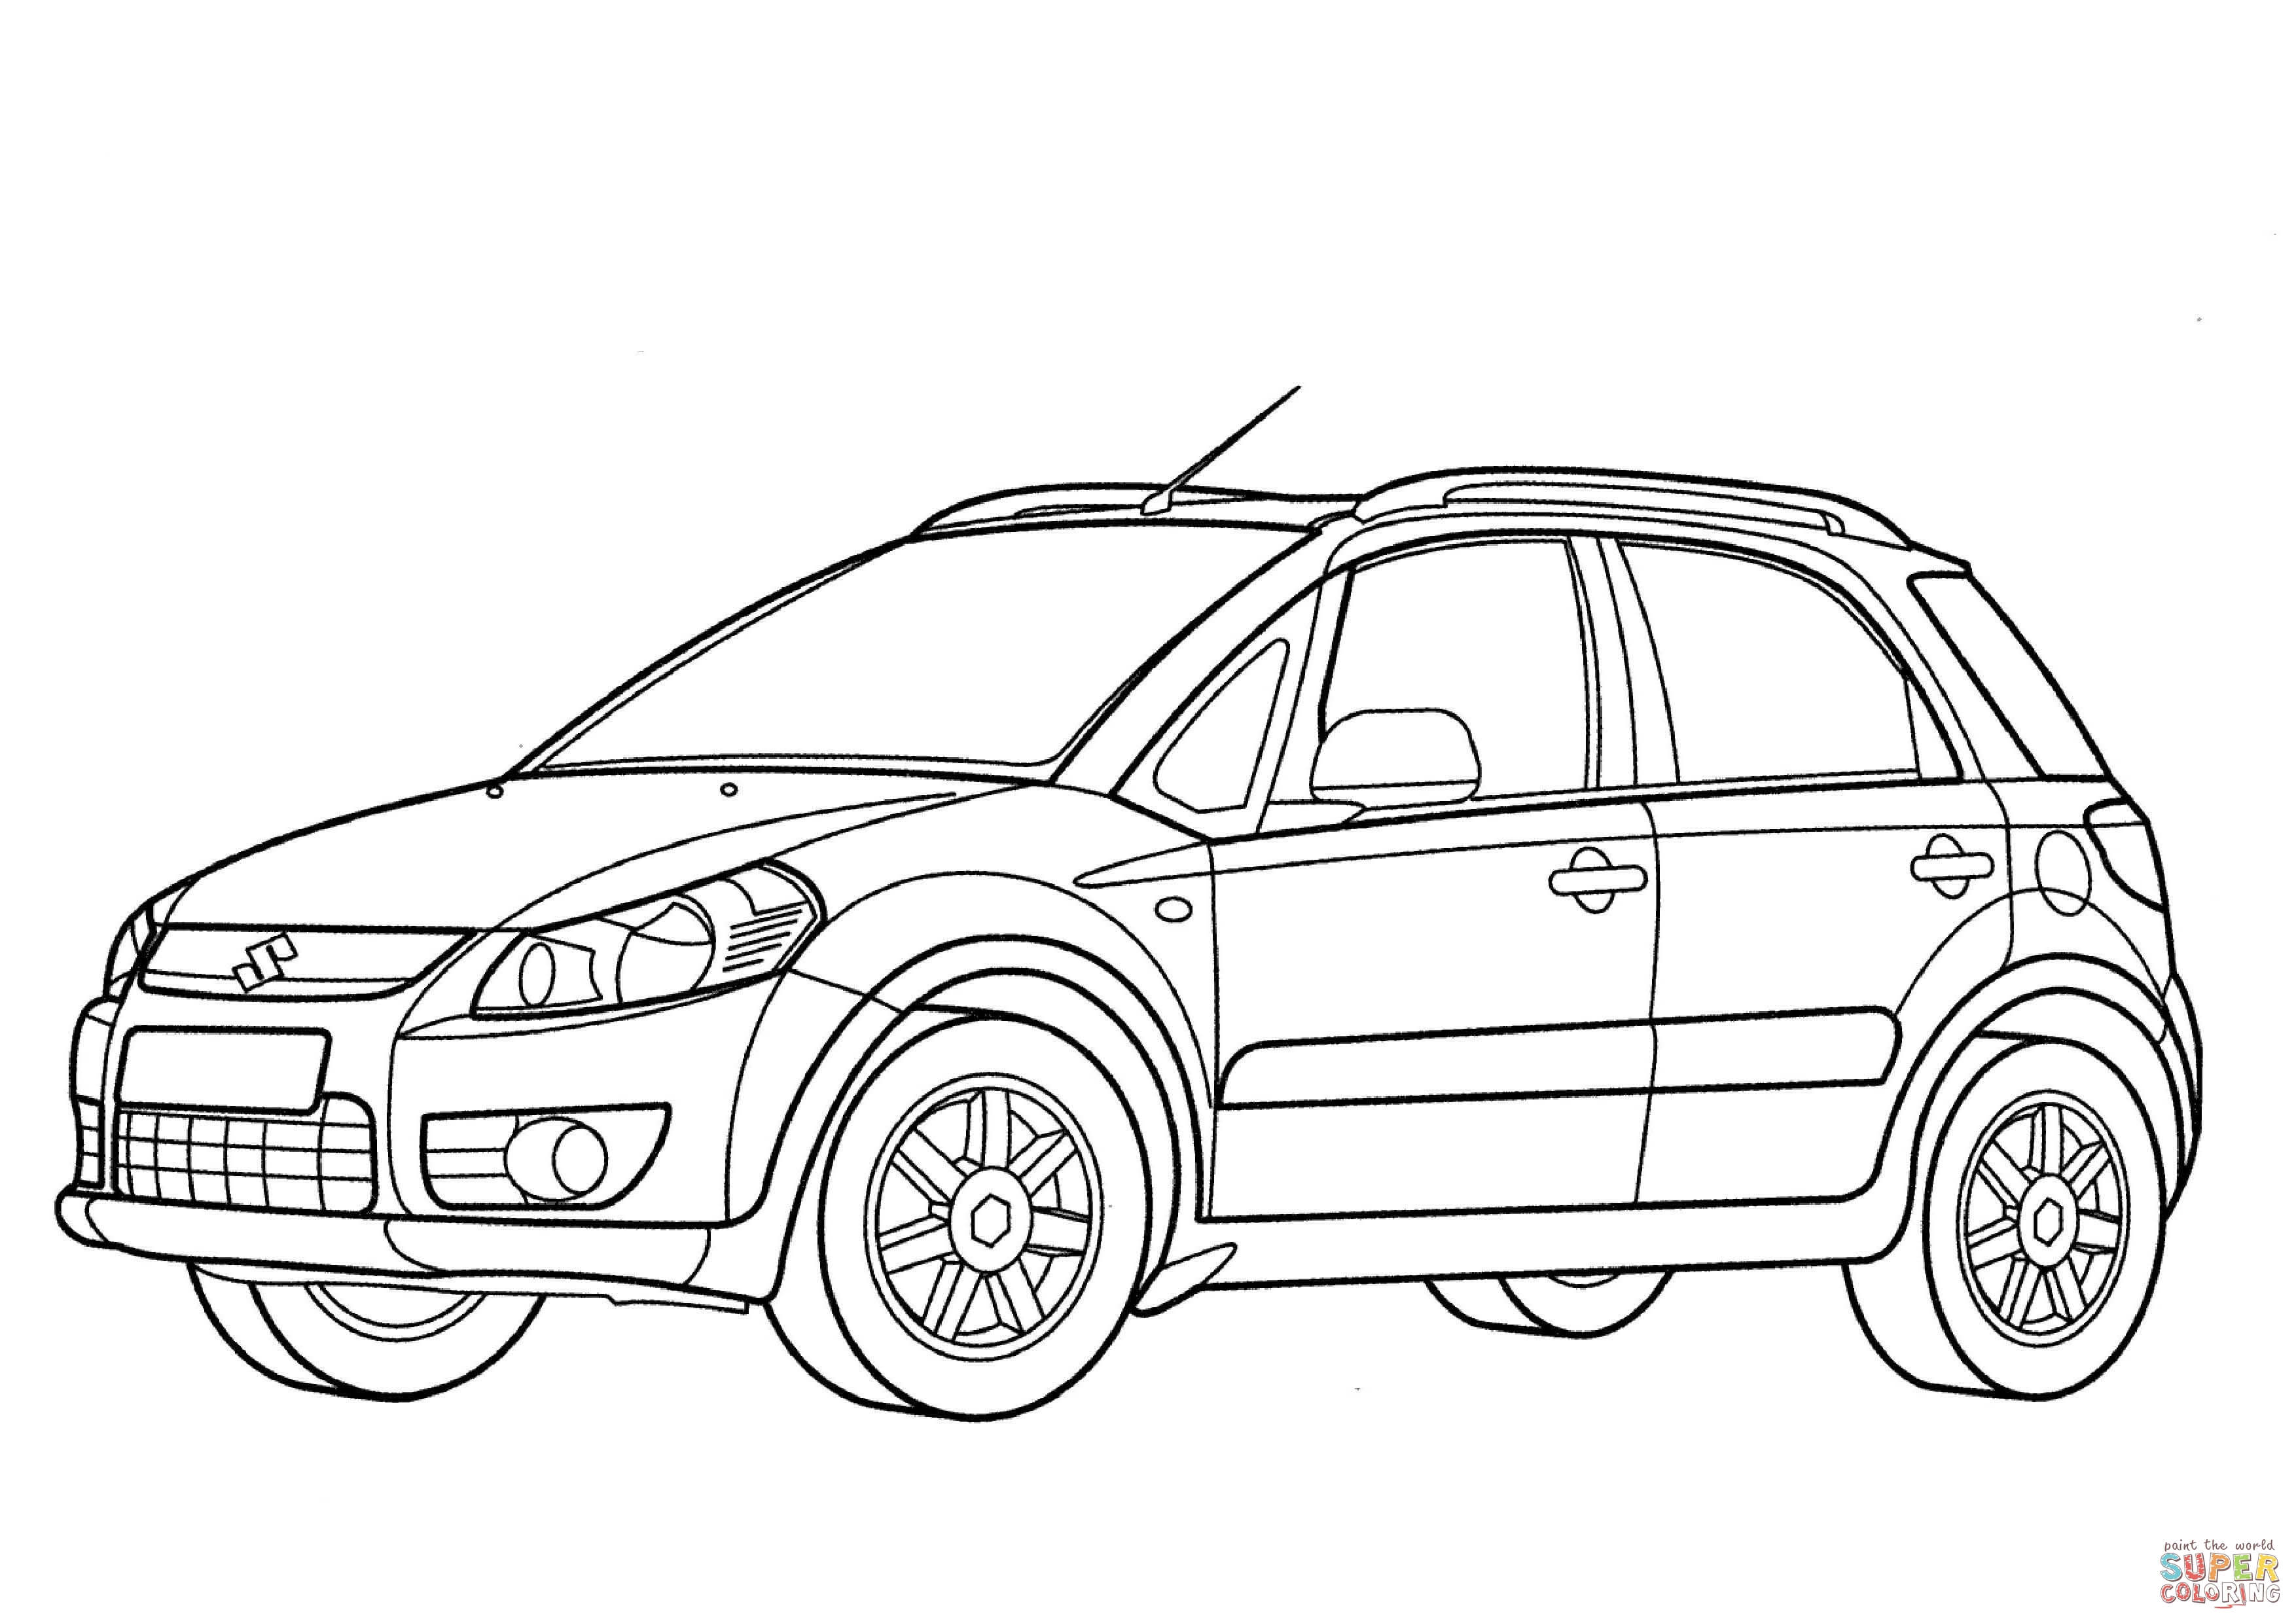 Ford Focus 4 Door Coloring Pages